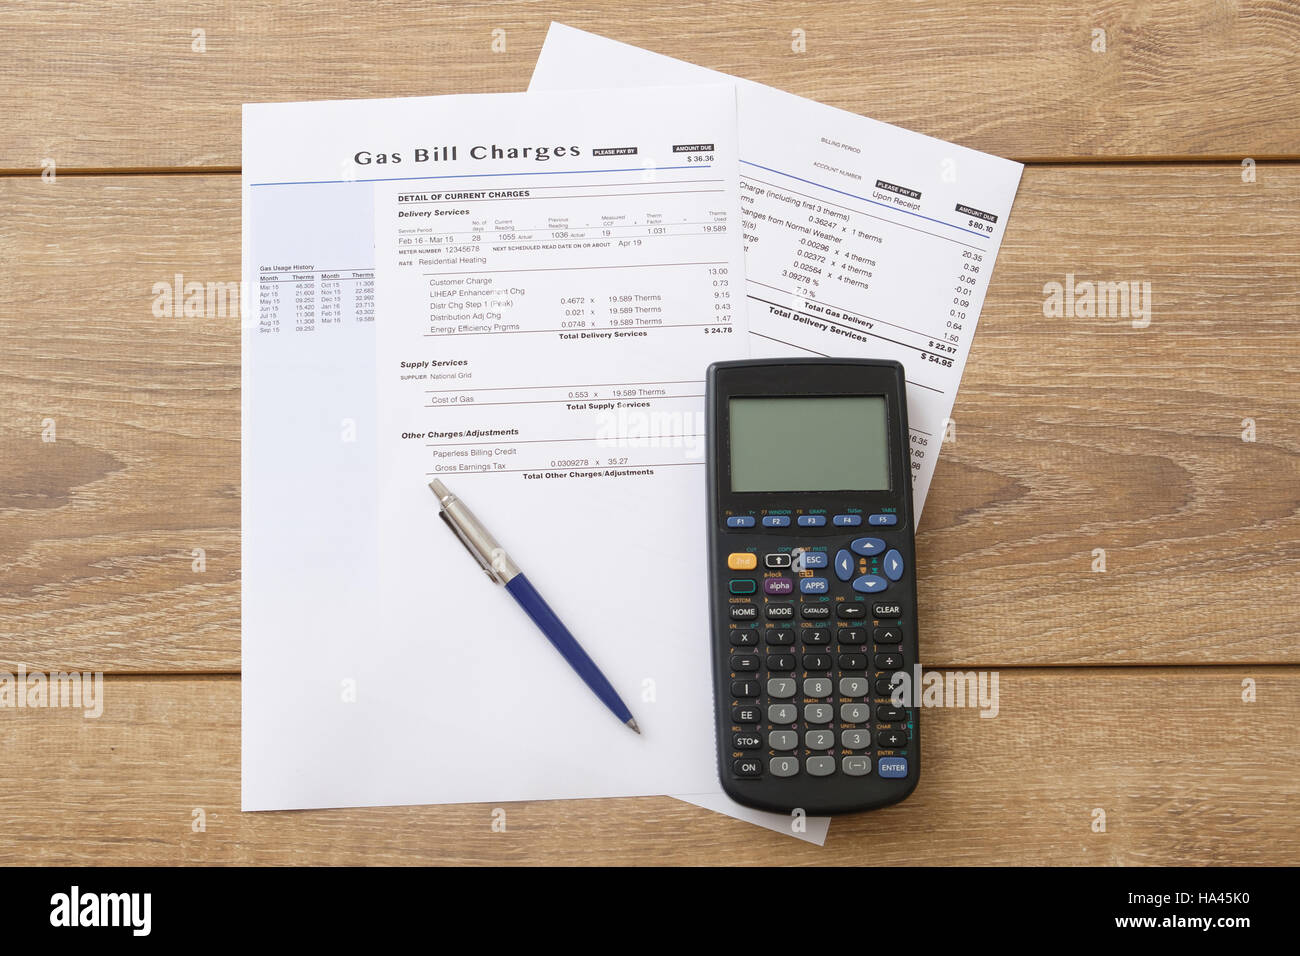 Gas bill charges paper form on the table Stock Photo